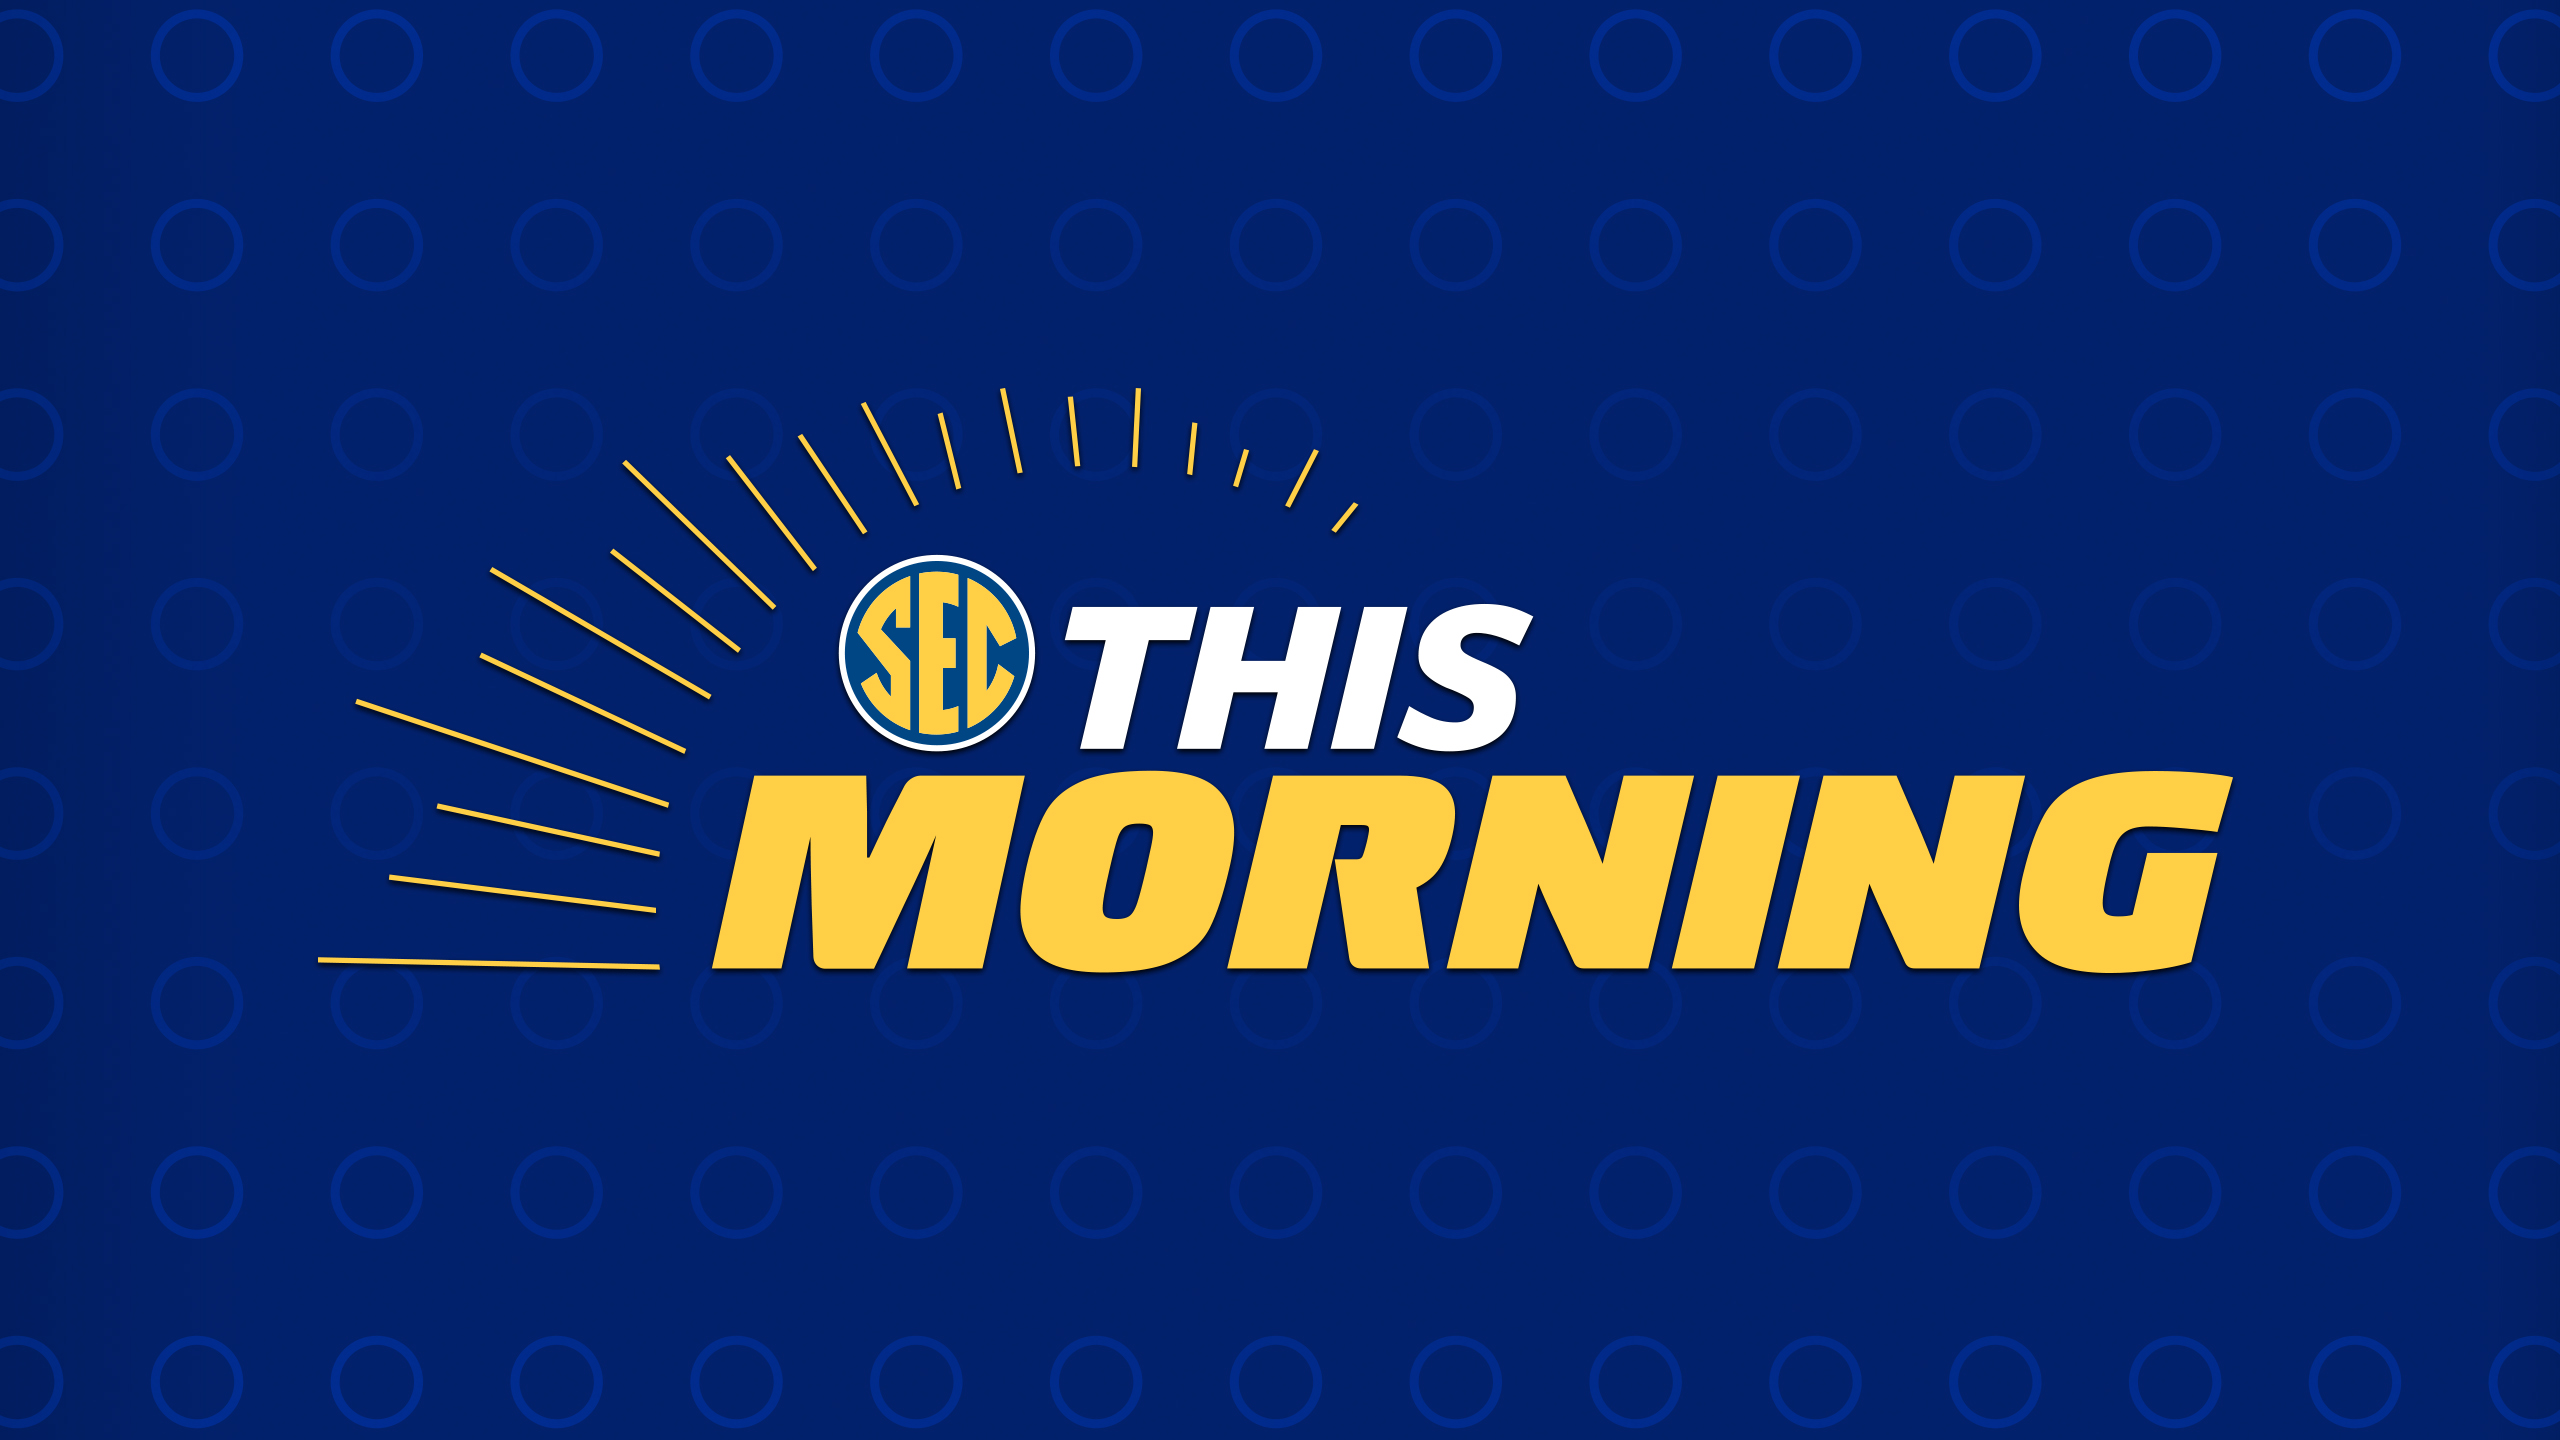 Tue, 10/16 - Best of SEC This Morning